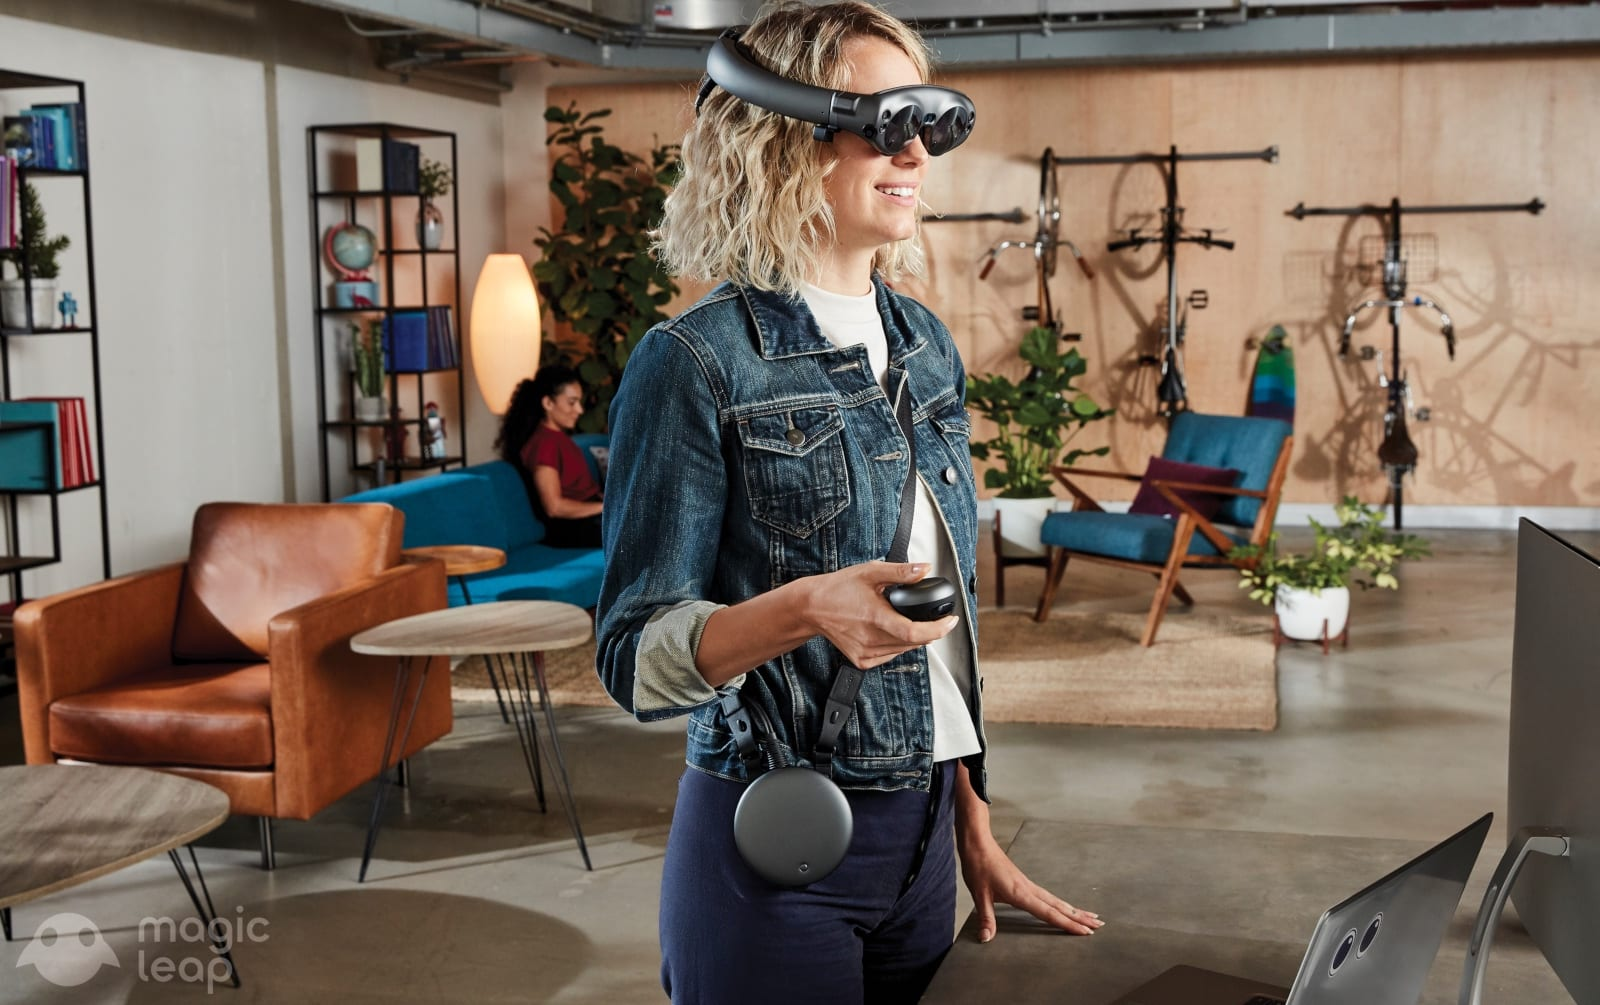 Magic Leap One Creators Edition